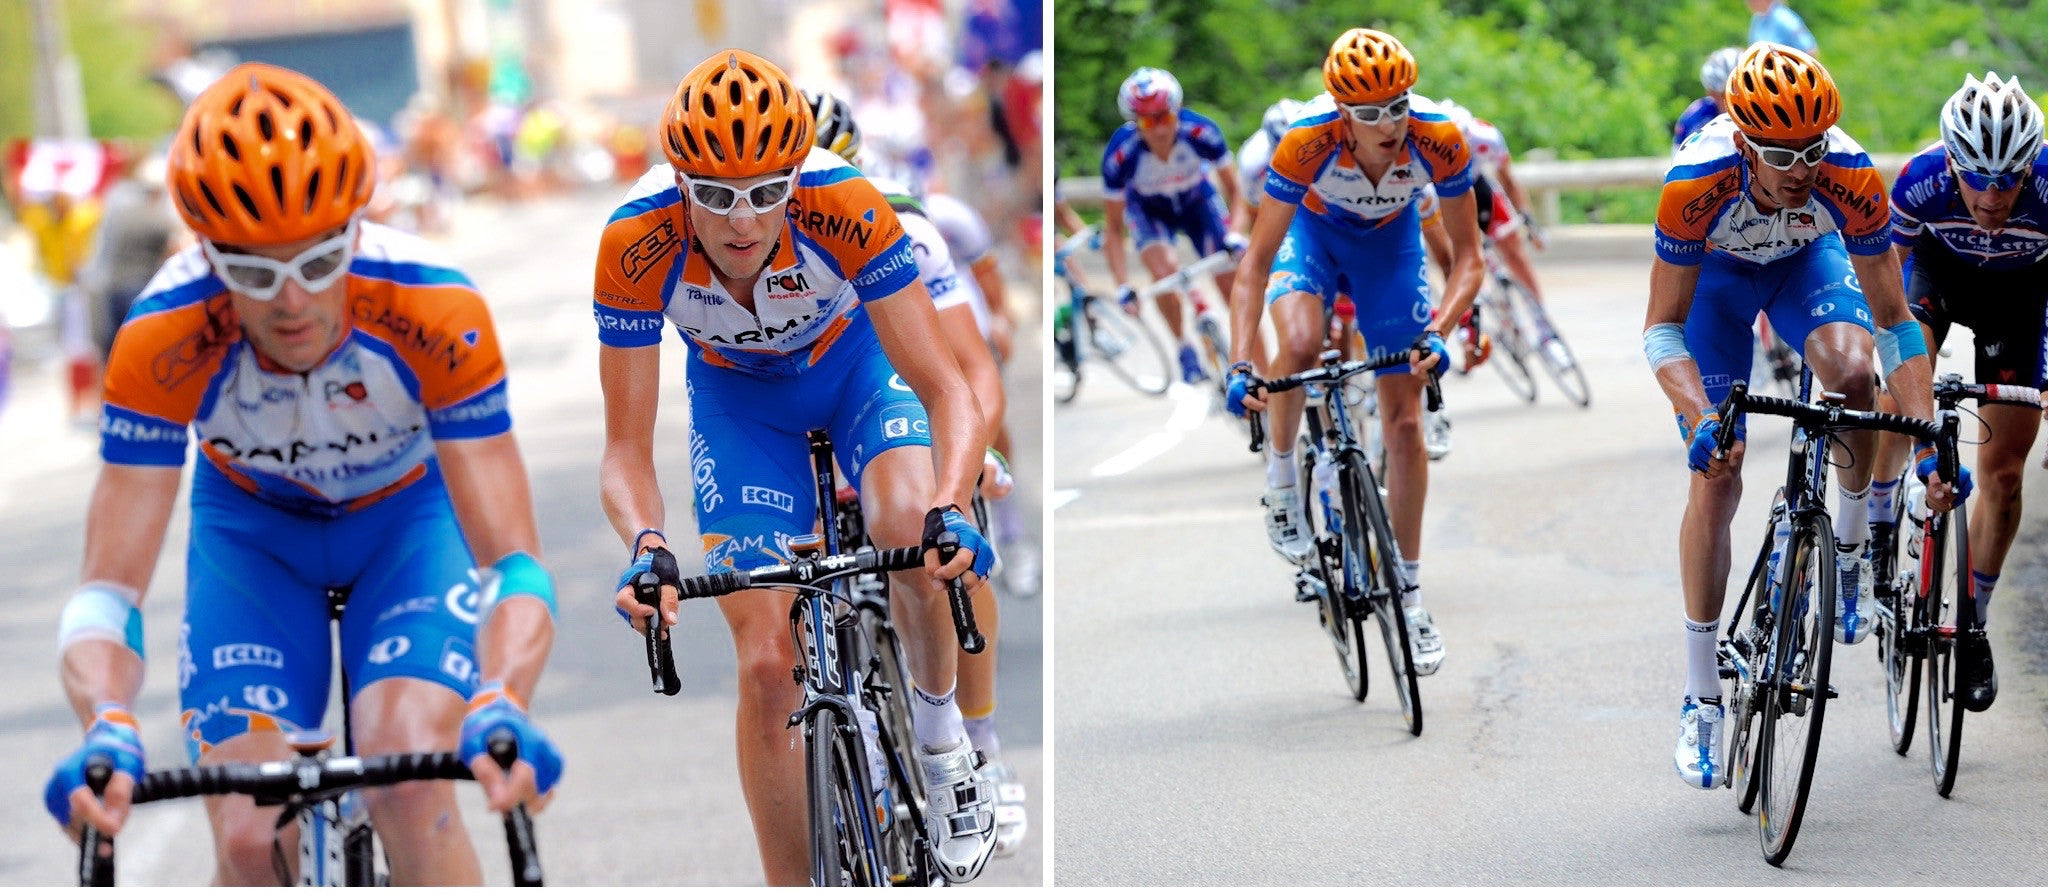 David Millar and Ryder Hesjedal